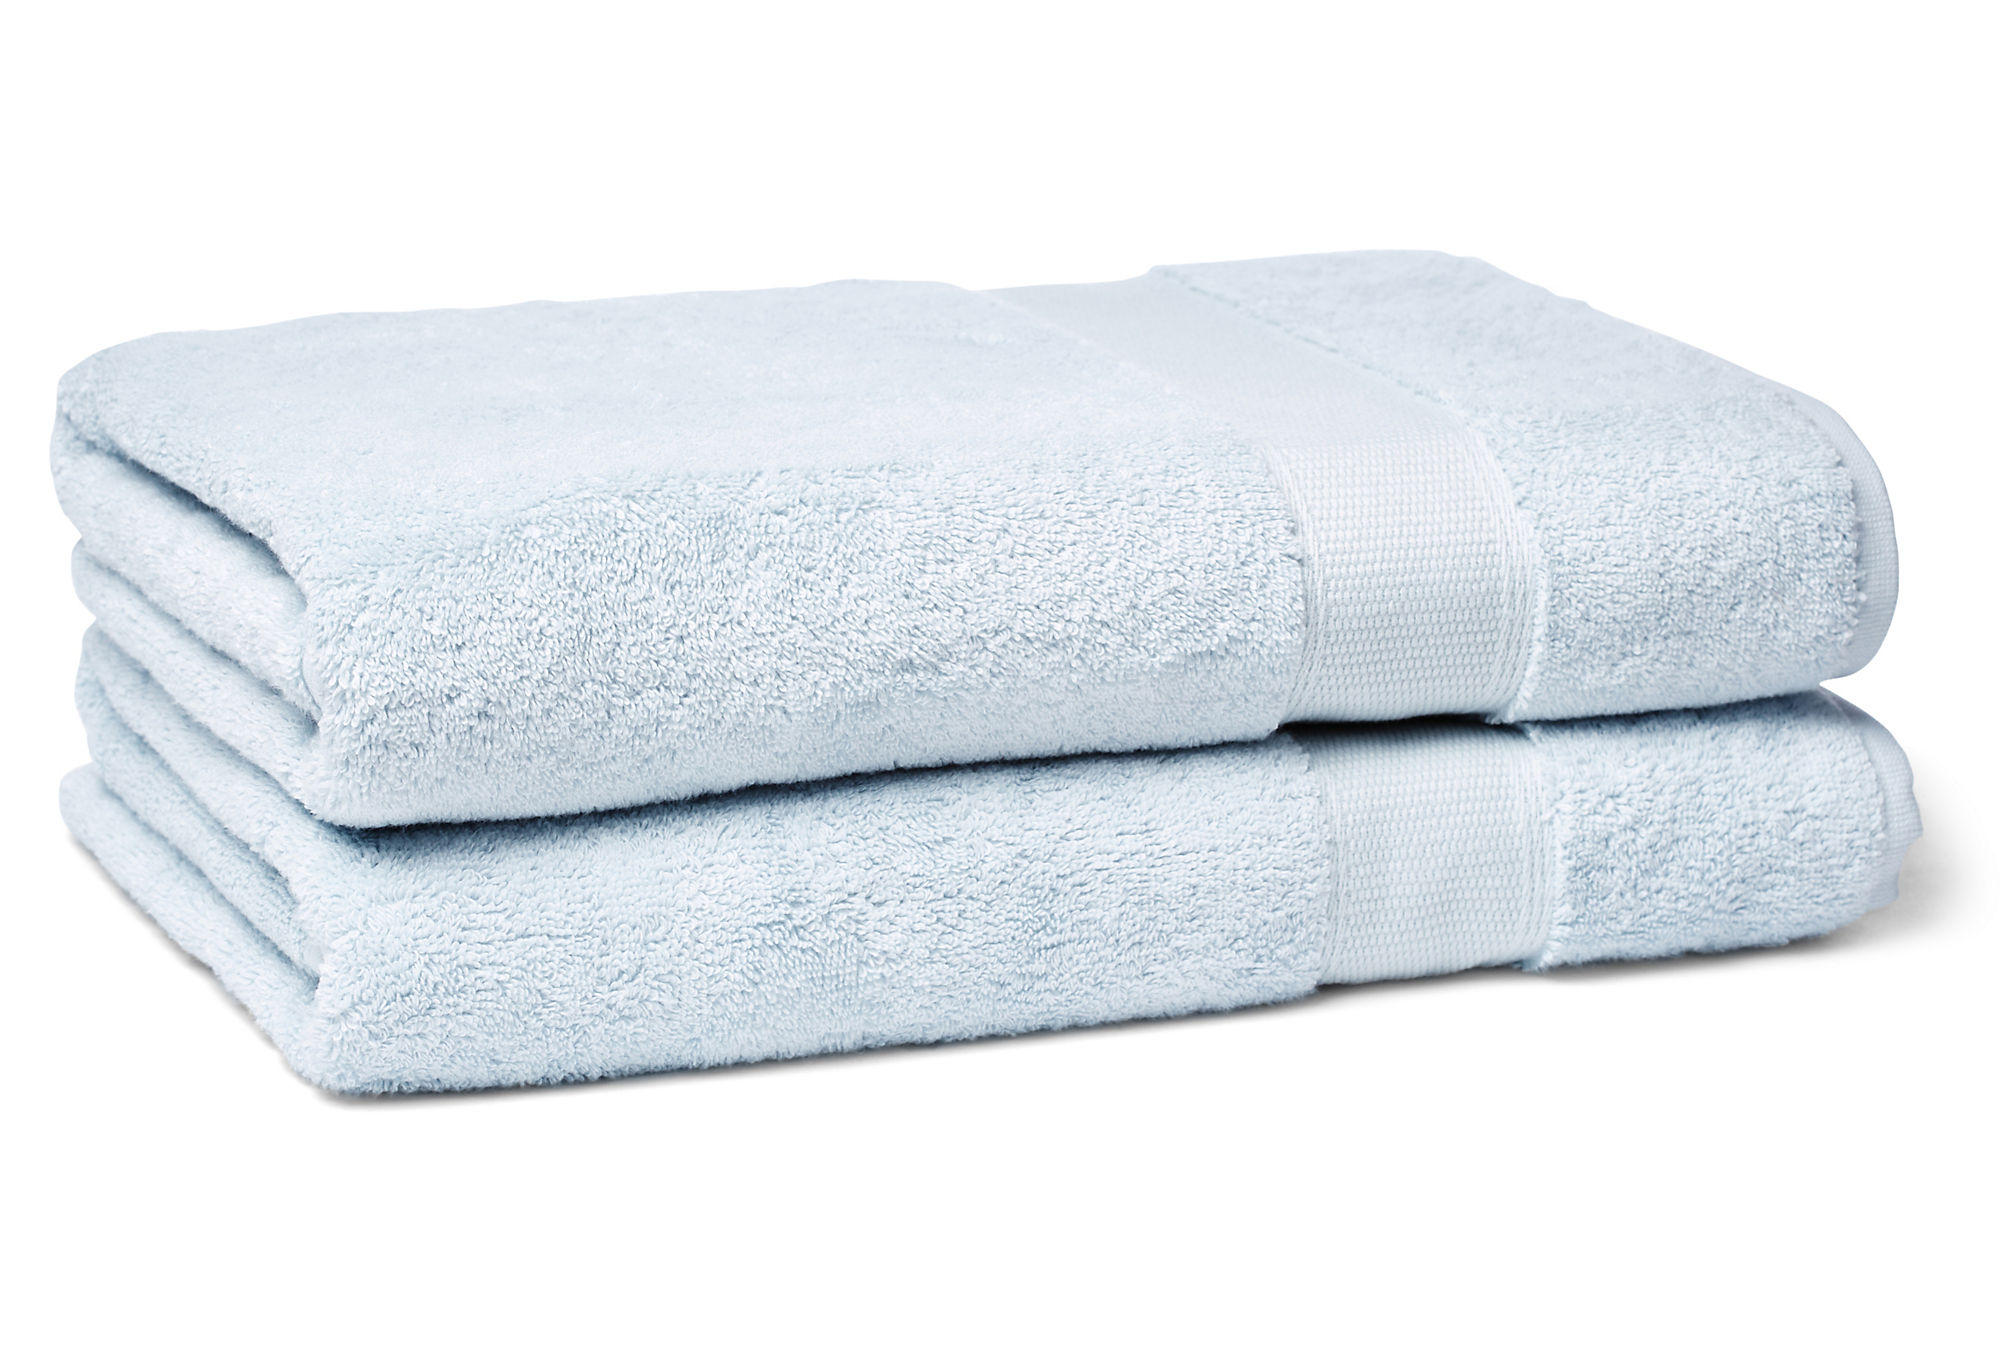 Light Blue Turkish Cotton Bath Towel From One Kings Lane